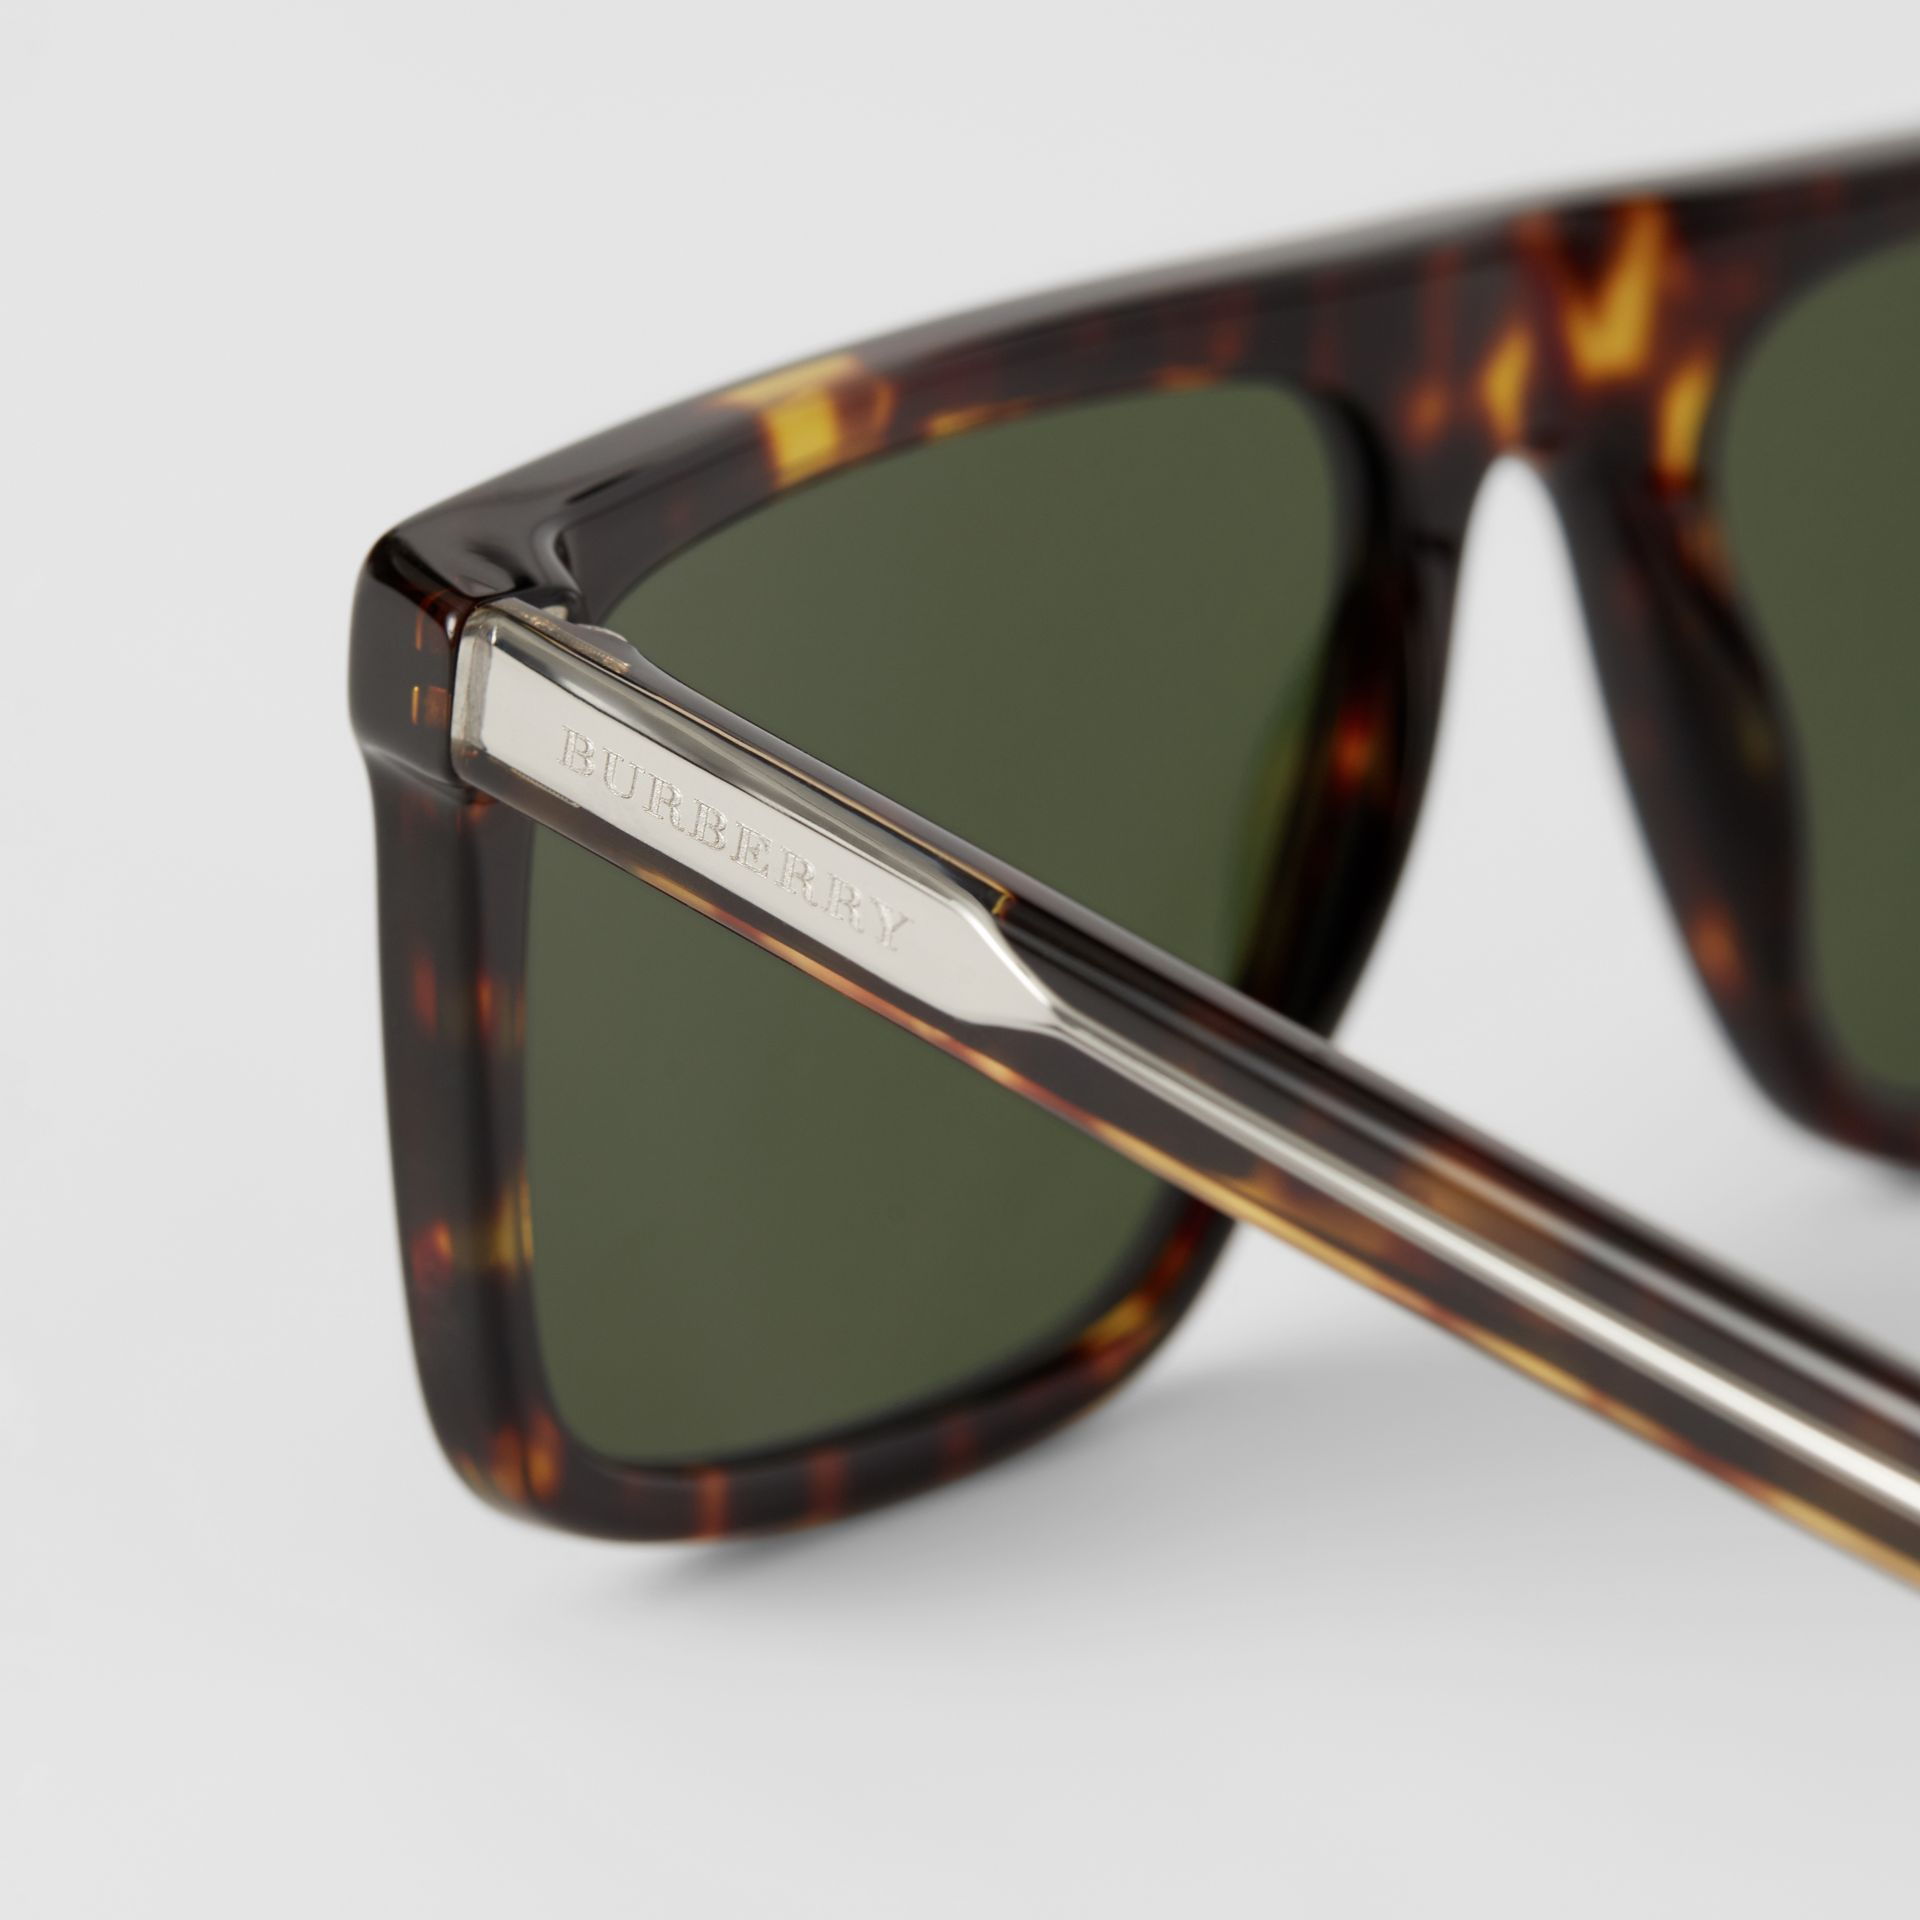 Straight-brow Sunglasses in Tortoise Shell - Men | Burberry Canada - gallery image 1